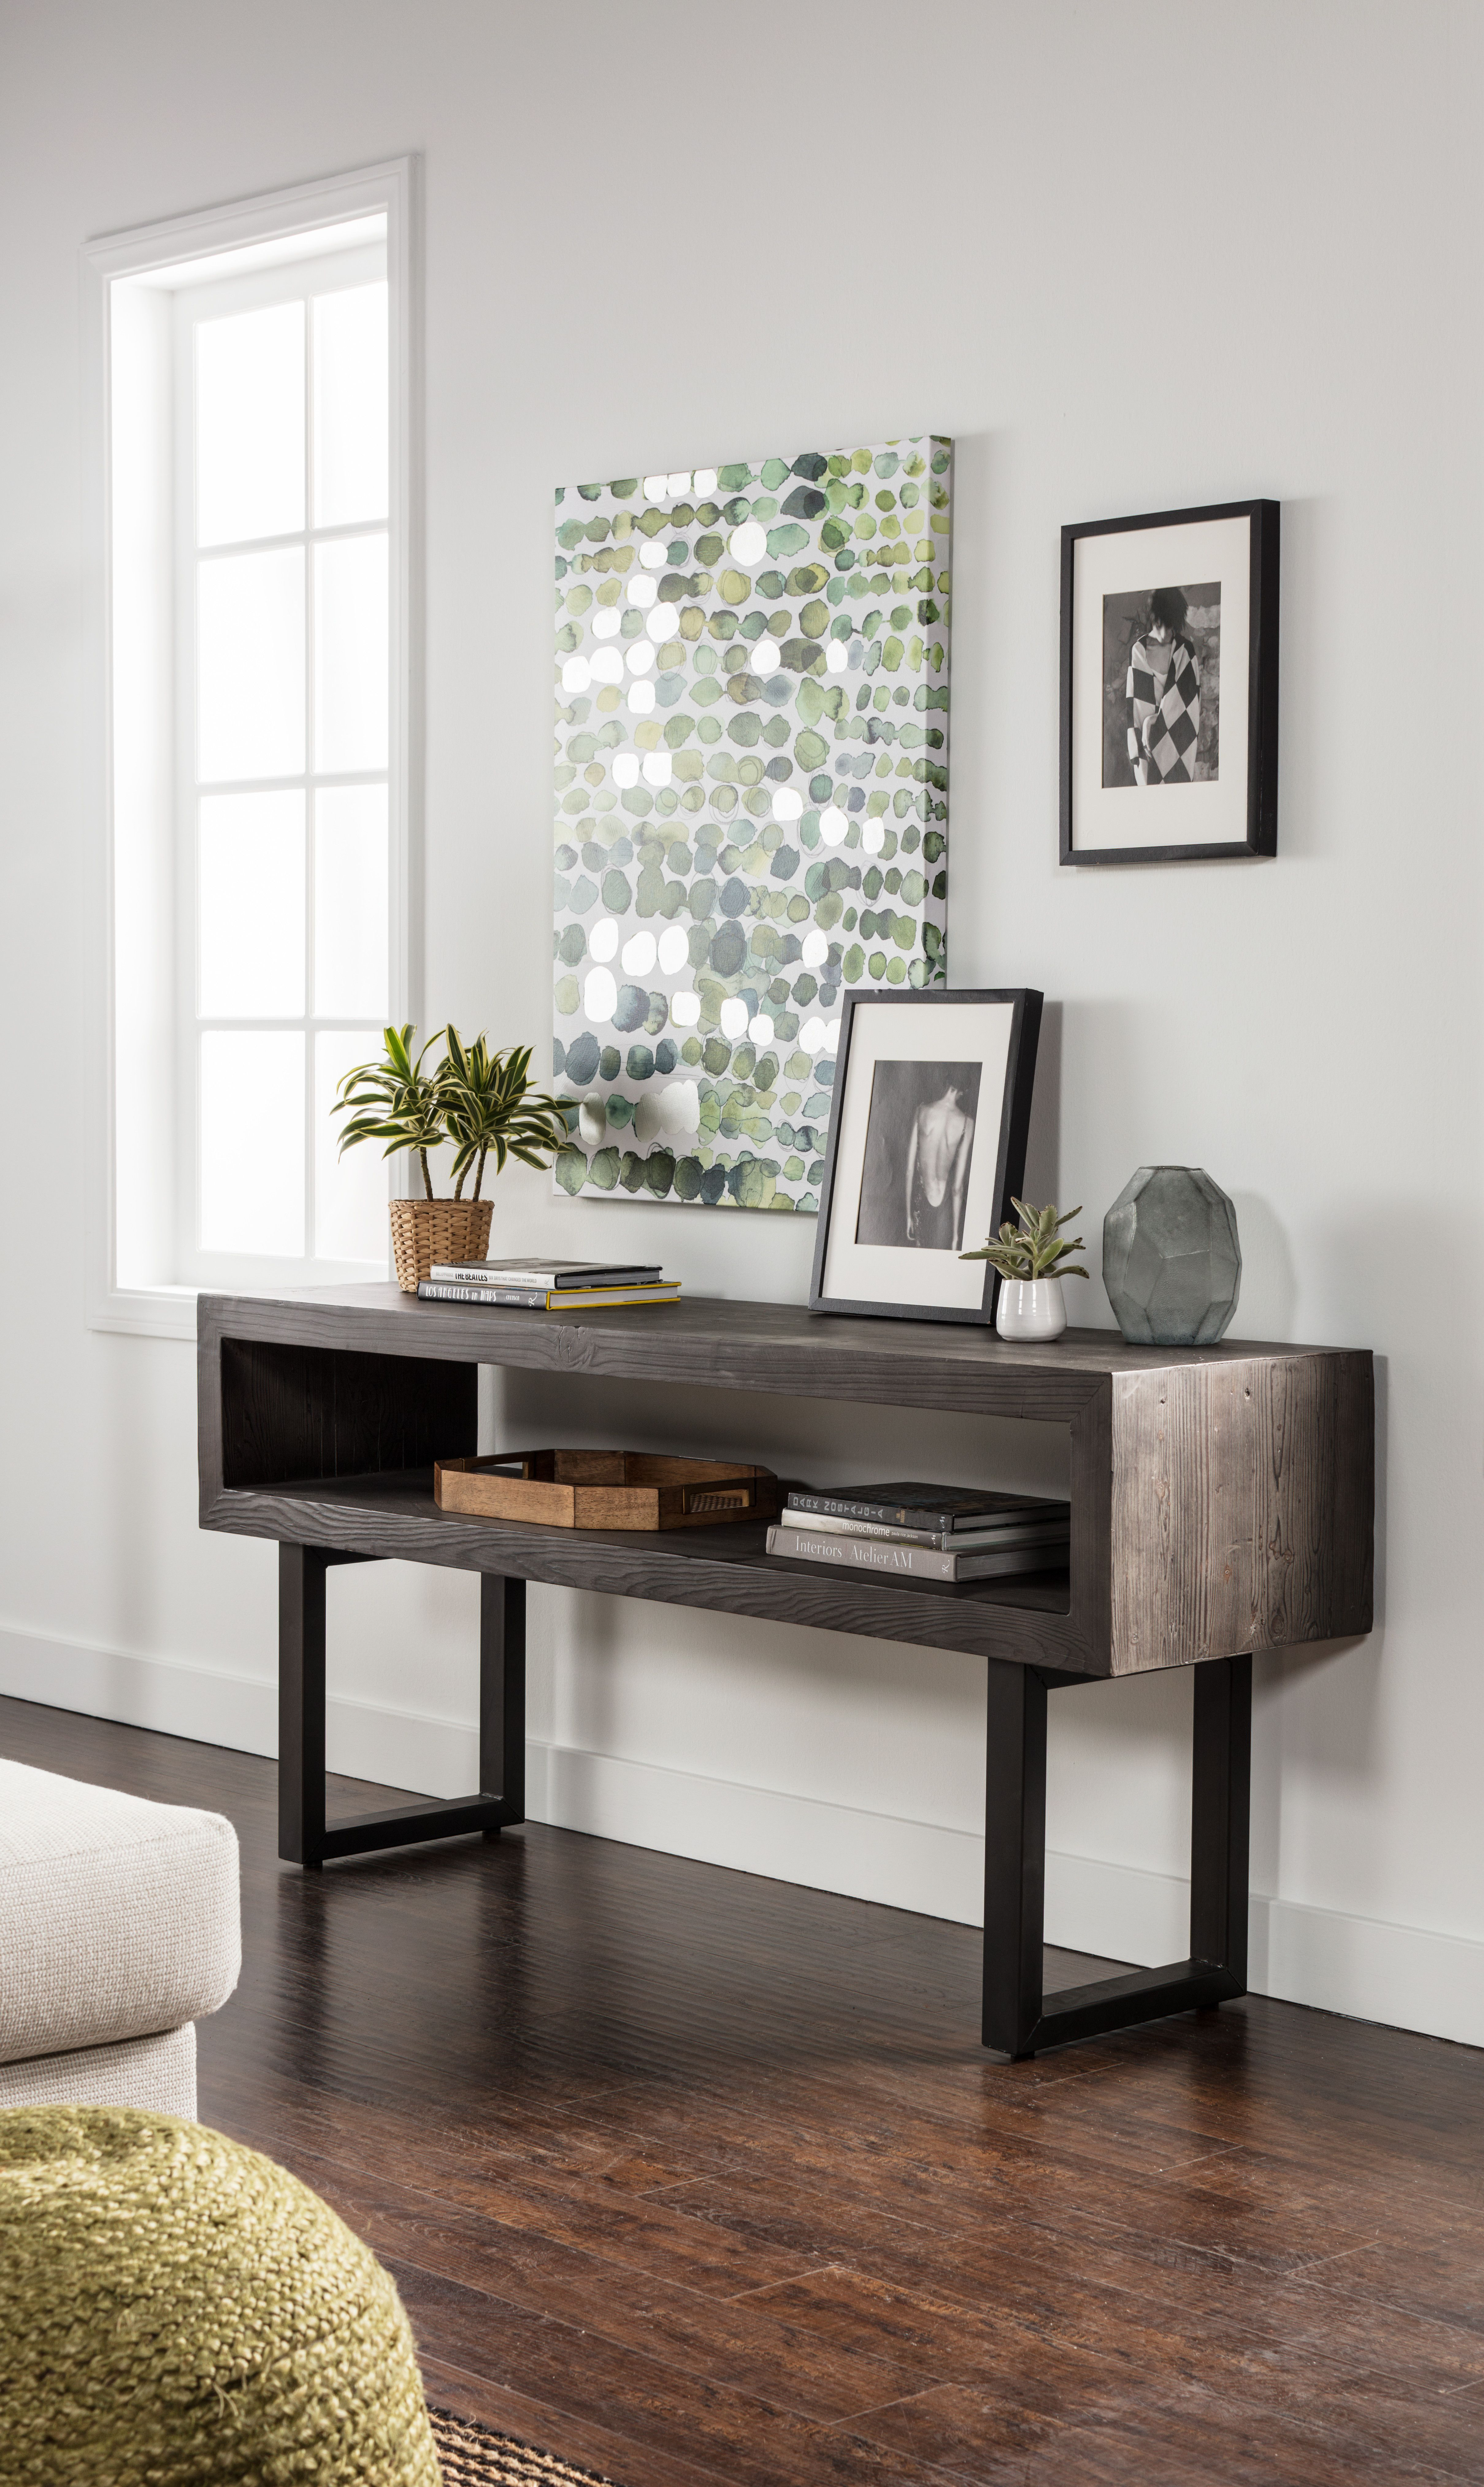 Verona Console Sofa Table Sleek Modern Design With Open Storage Makes The Ultimate Living Room Companion Airy Yet Sturdy Iron Legs And Reclaimed Pi Home Decor